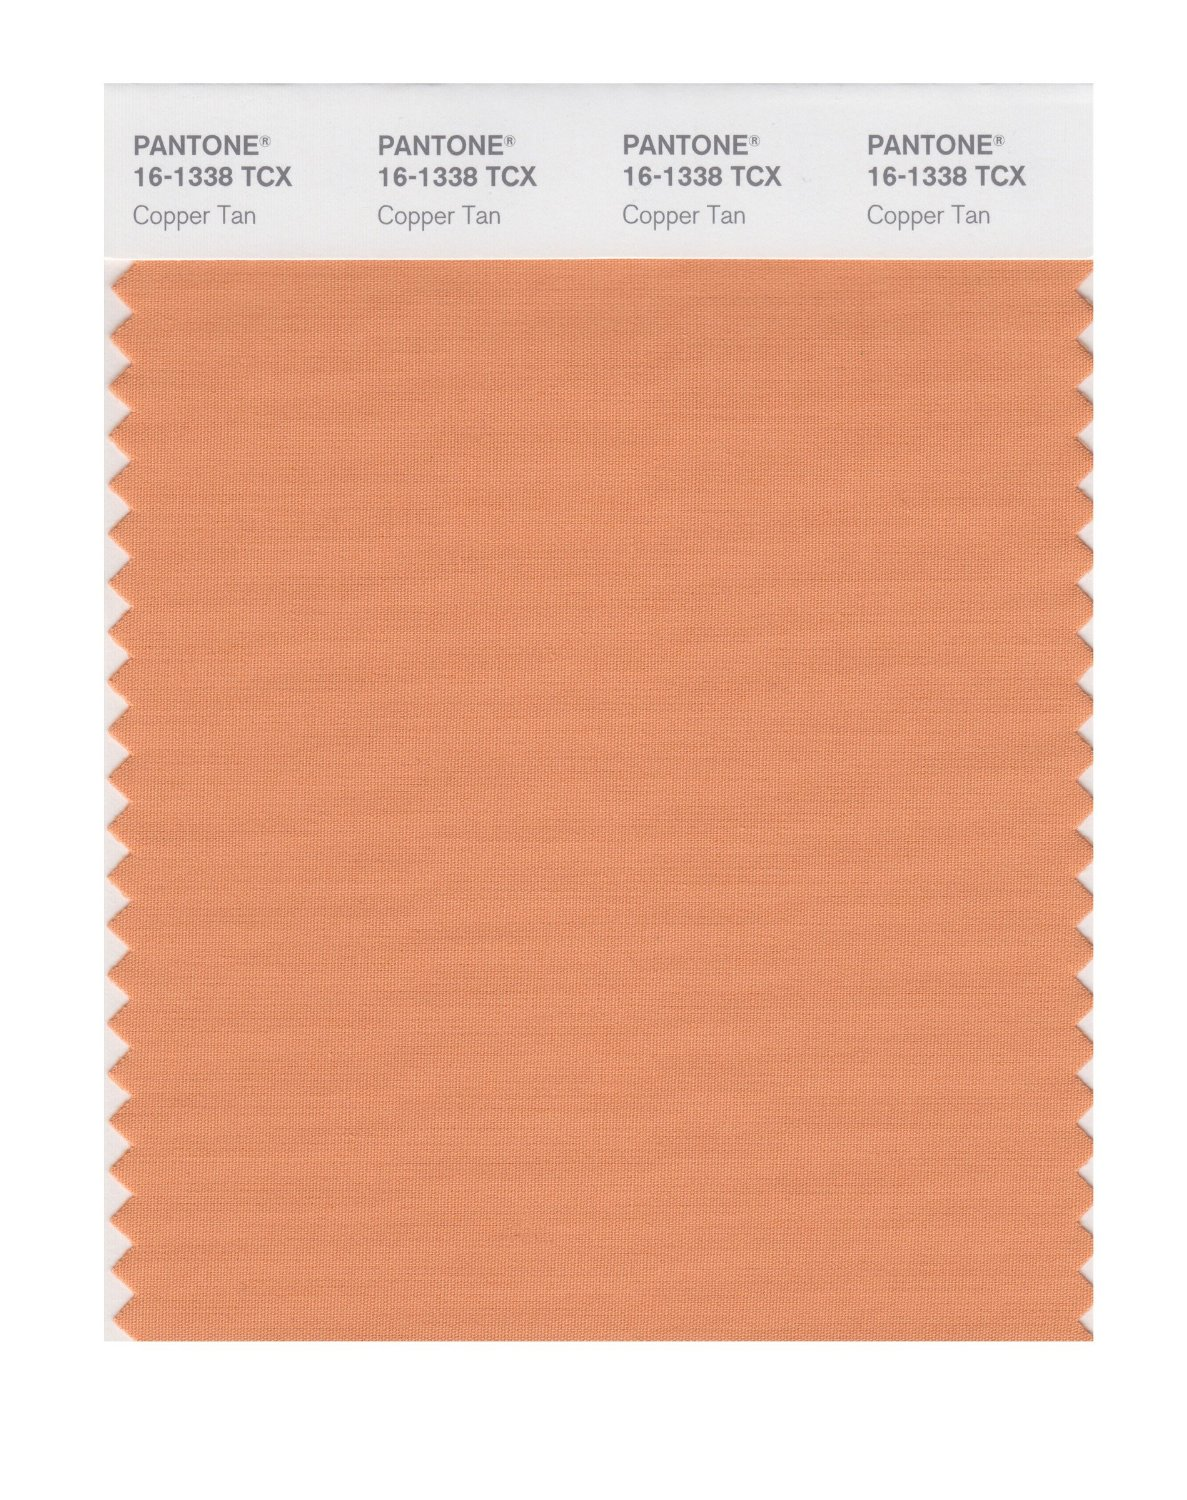 Pantone Smart Swatch 16-1338 Copper Tan